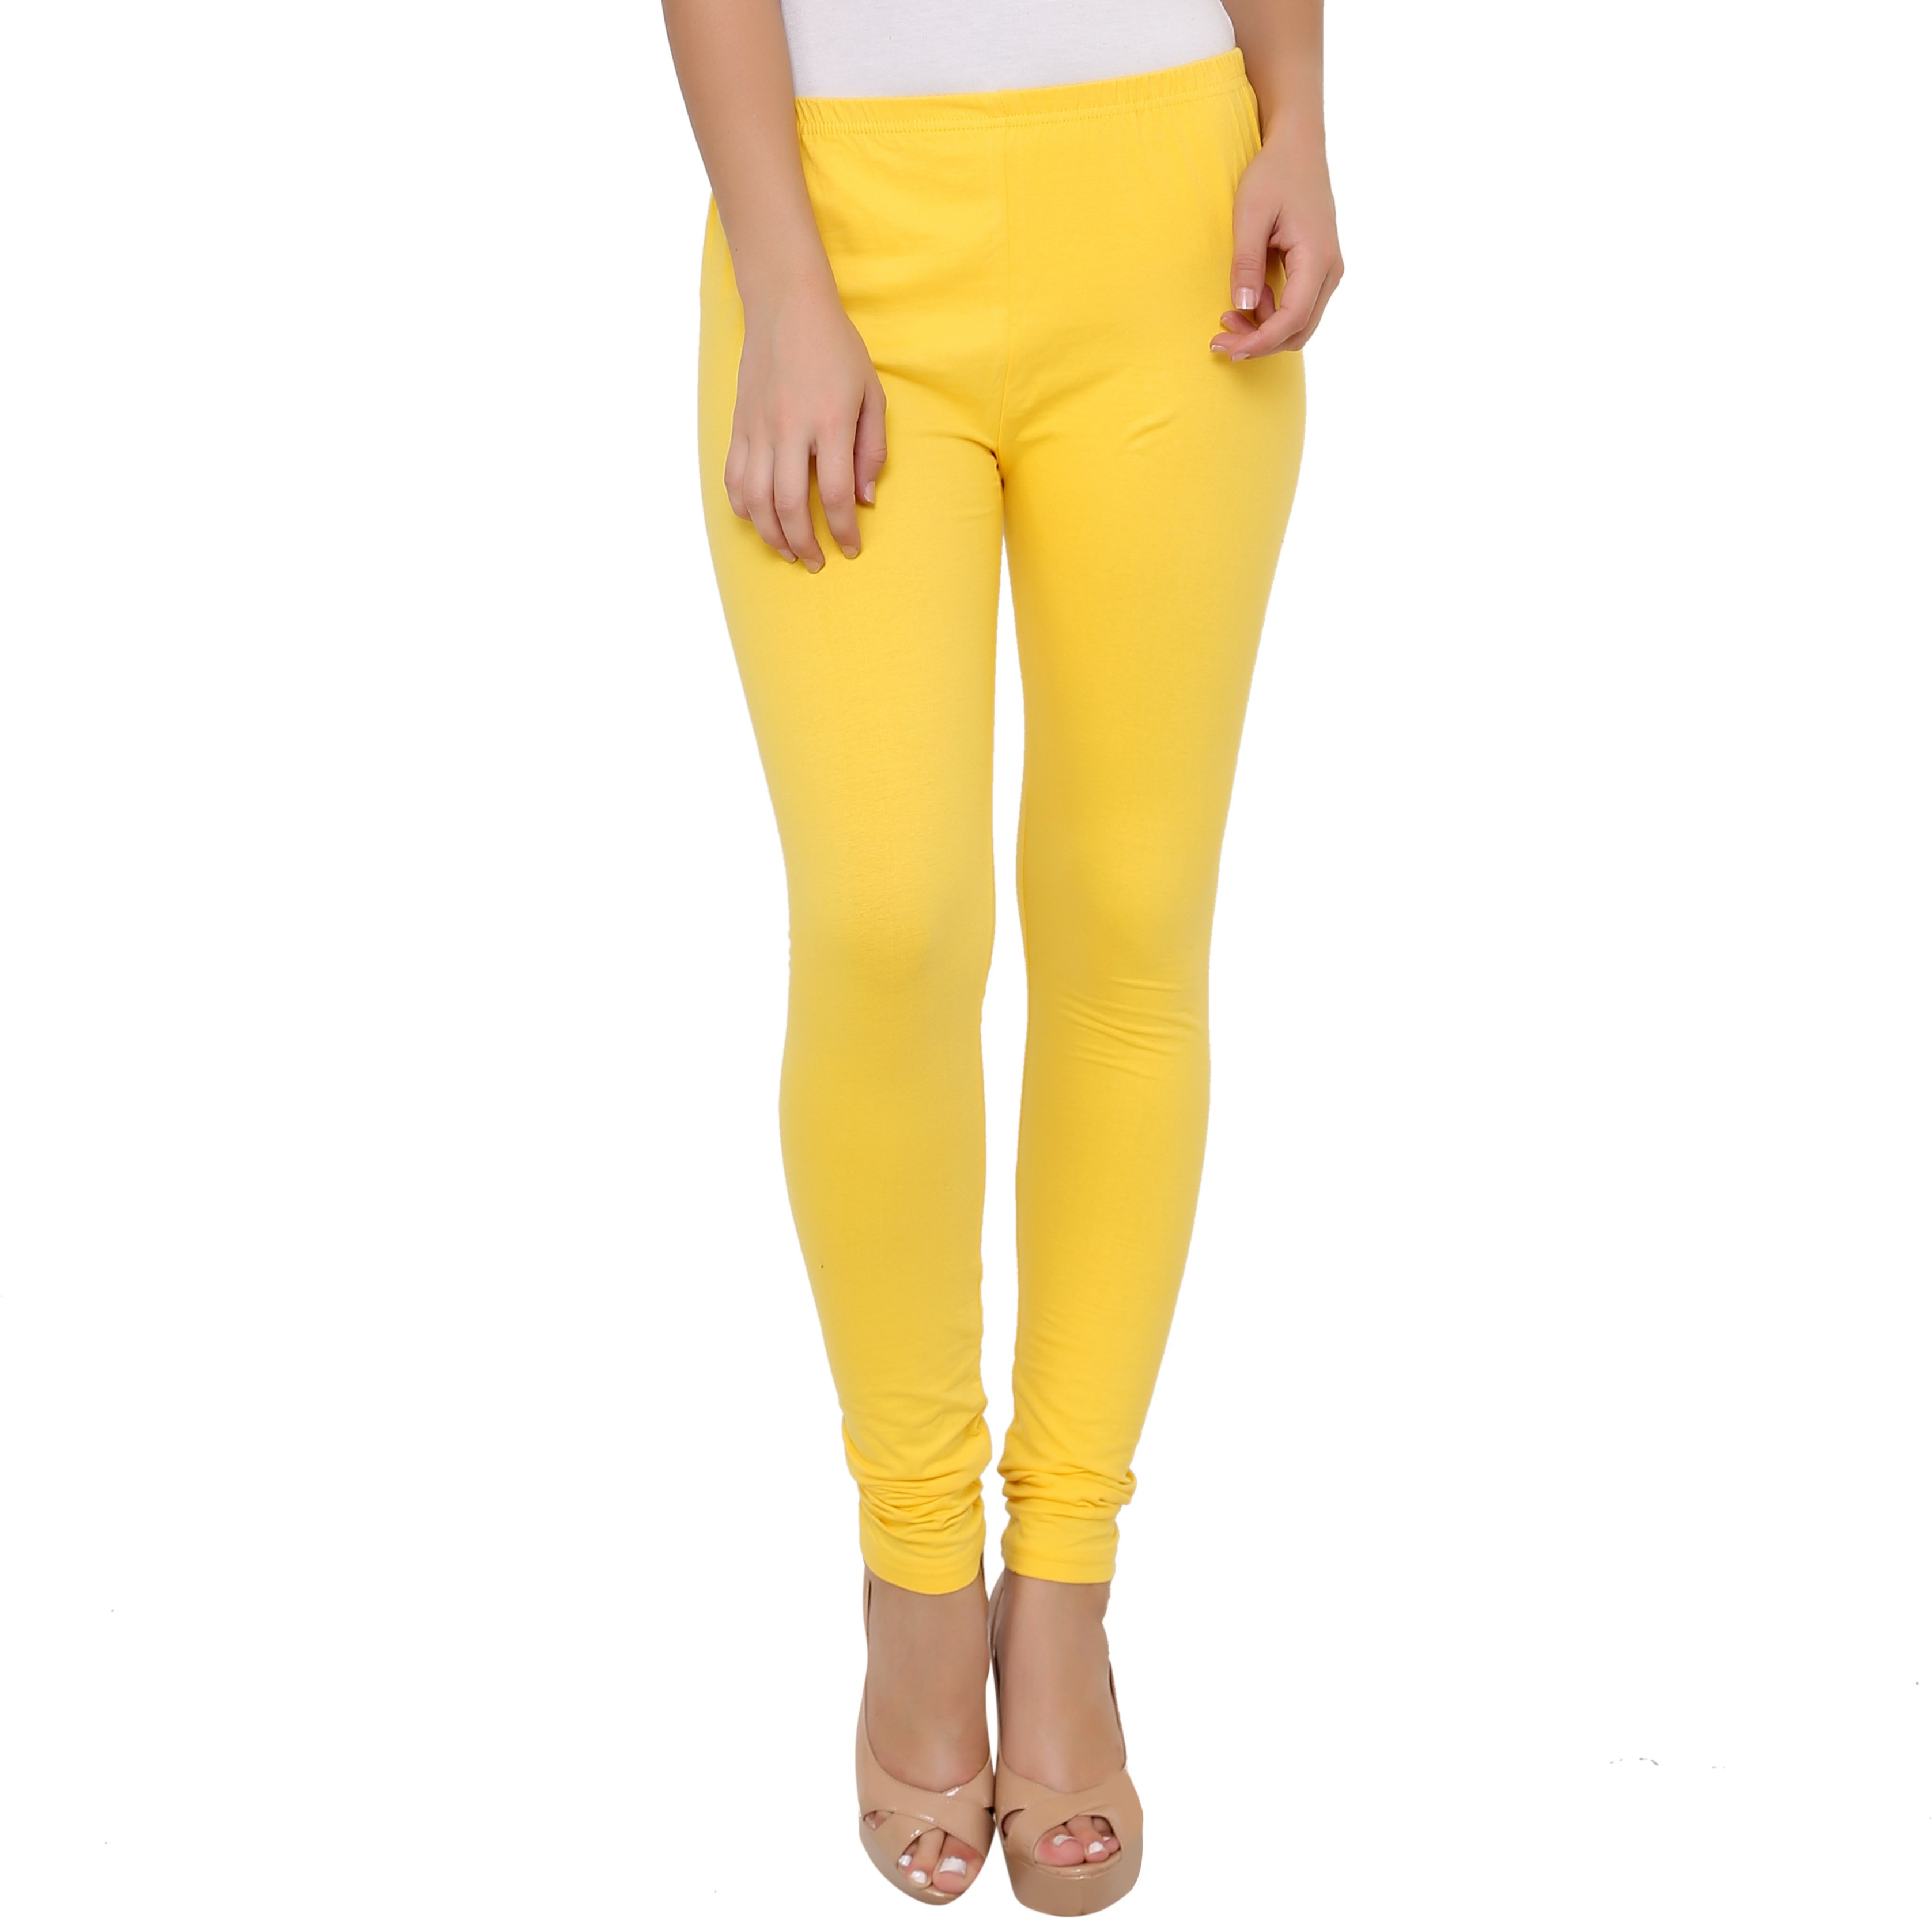 Leebonee Womens Yellow Leggings